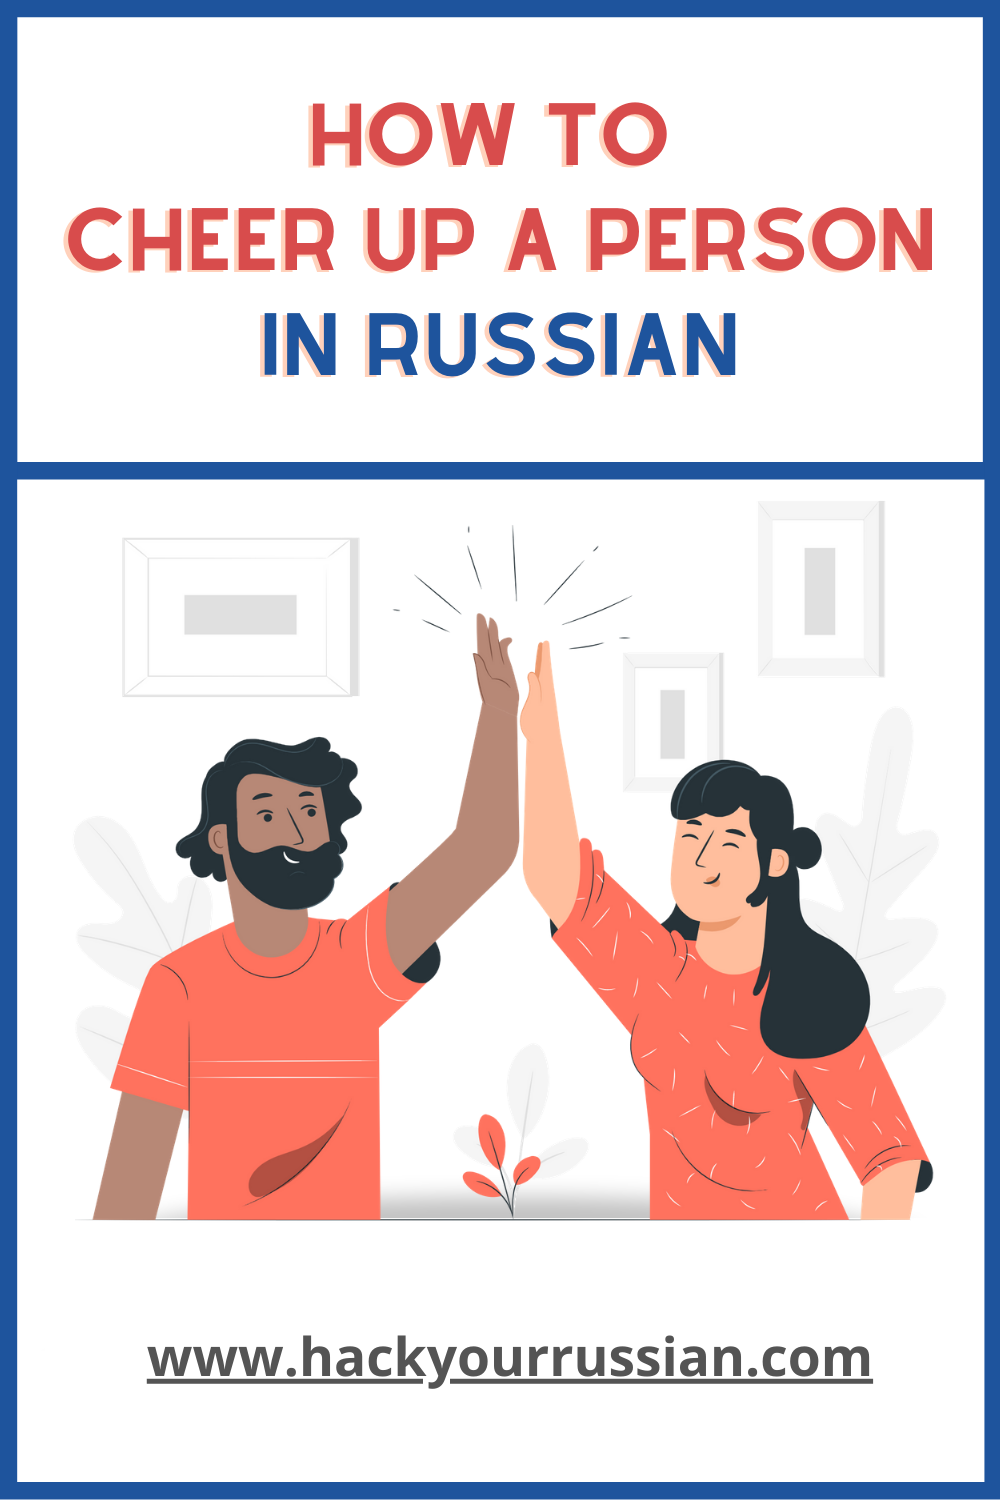 How to encourage and cheer up in Russian - Russian phrases